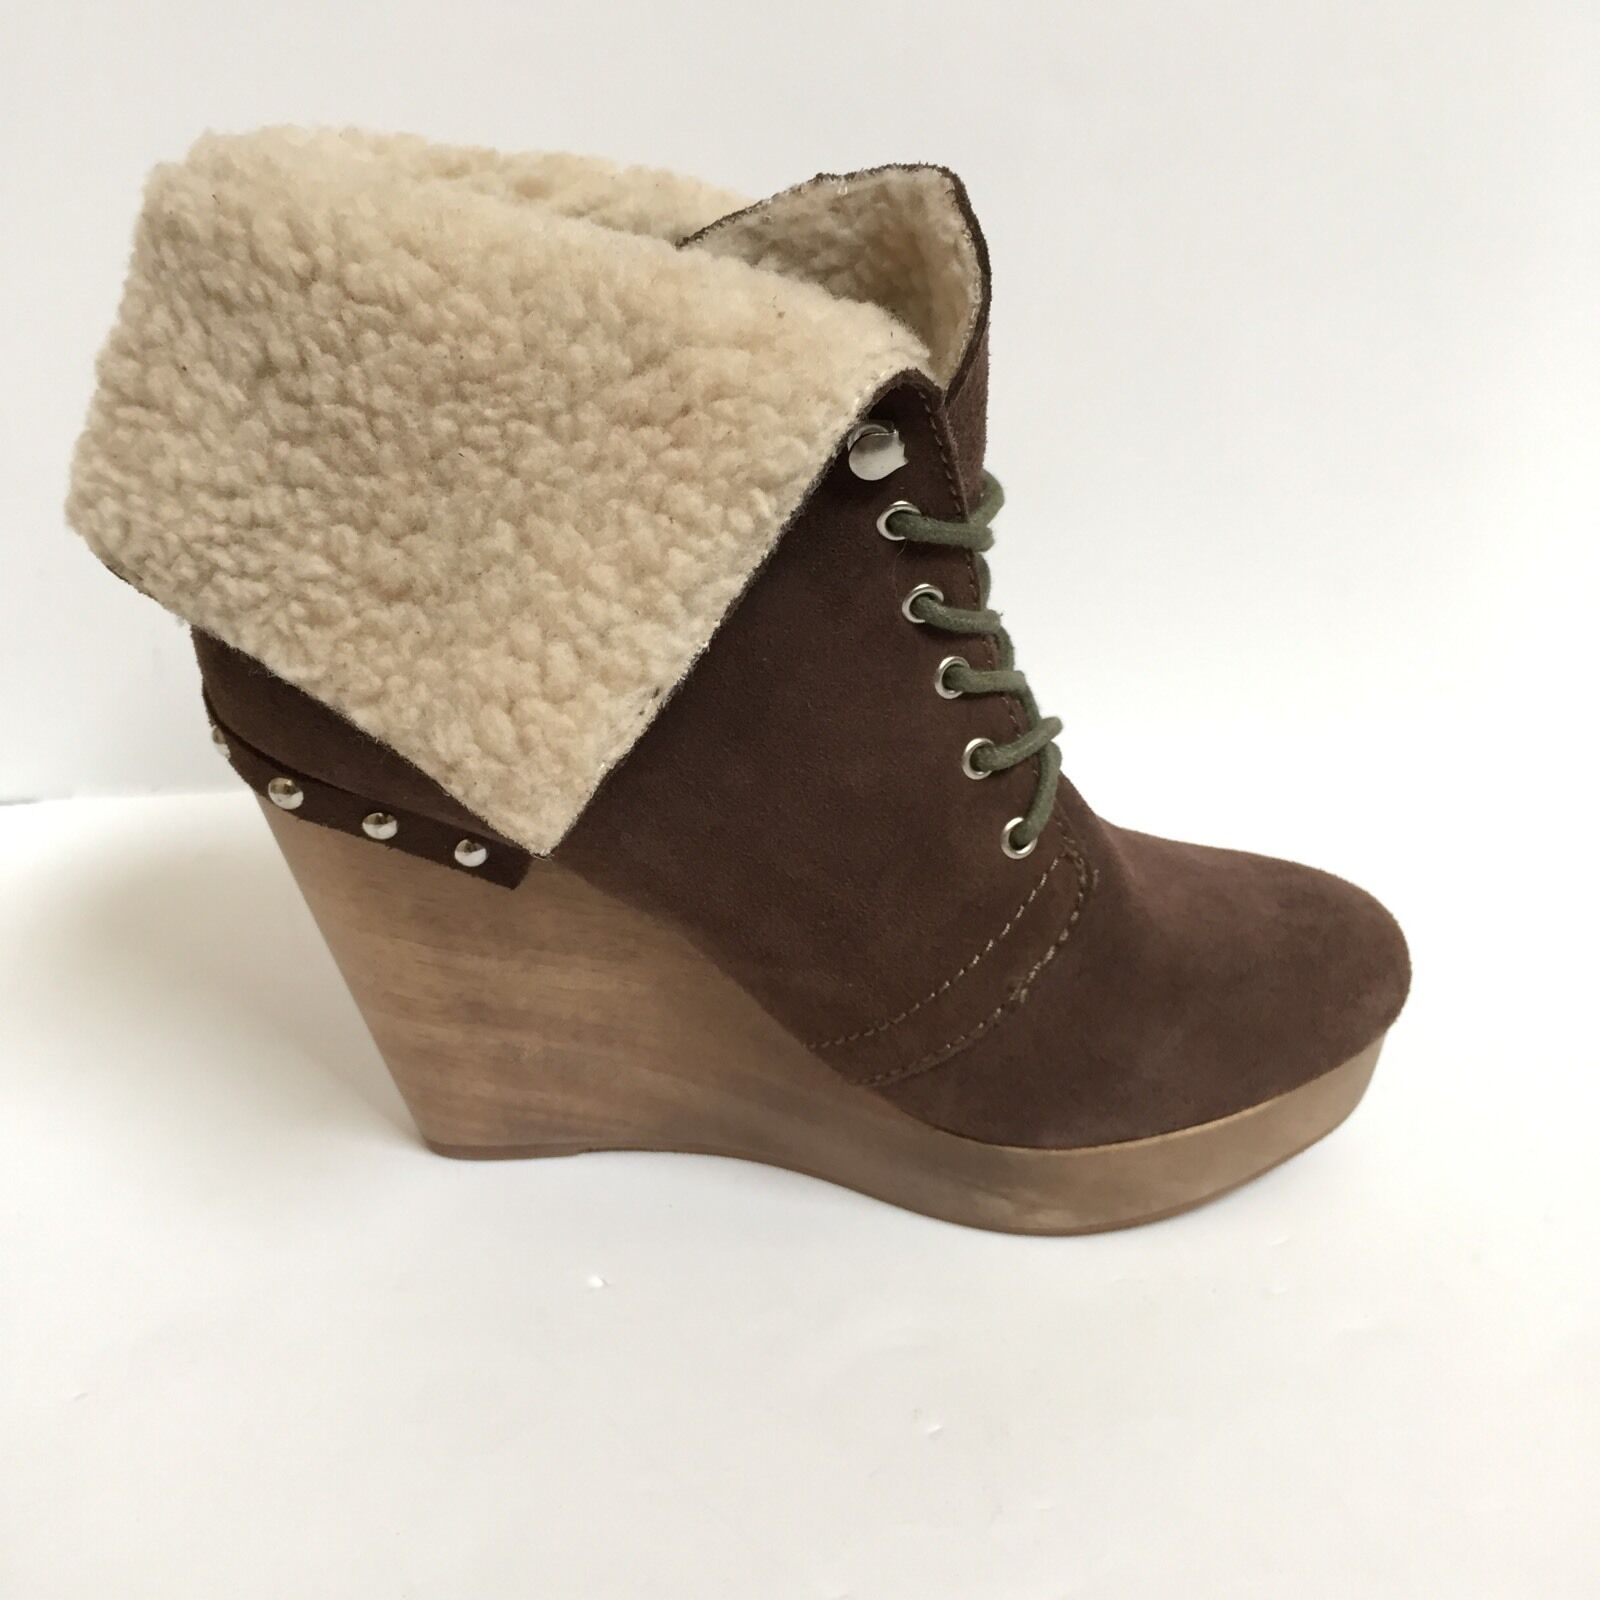 Naughty Monkey Short & Sweet suede wedge booties boots Brown/Taupe, NEW Orig9